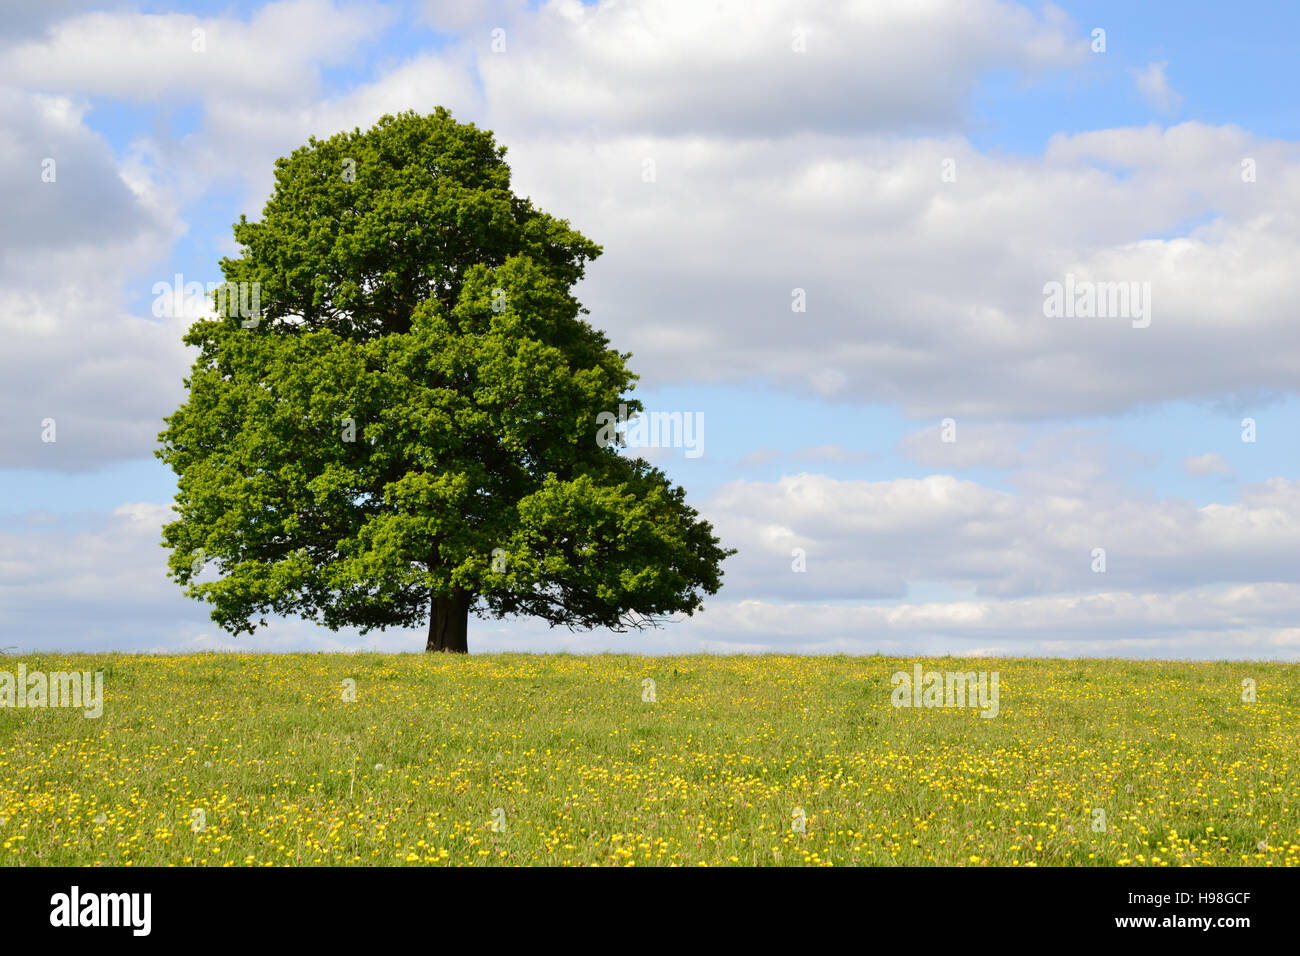 Single tree in a buttercup field under a cloudy blue sky Stock Photo